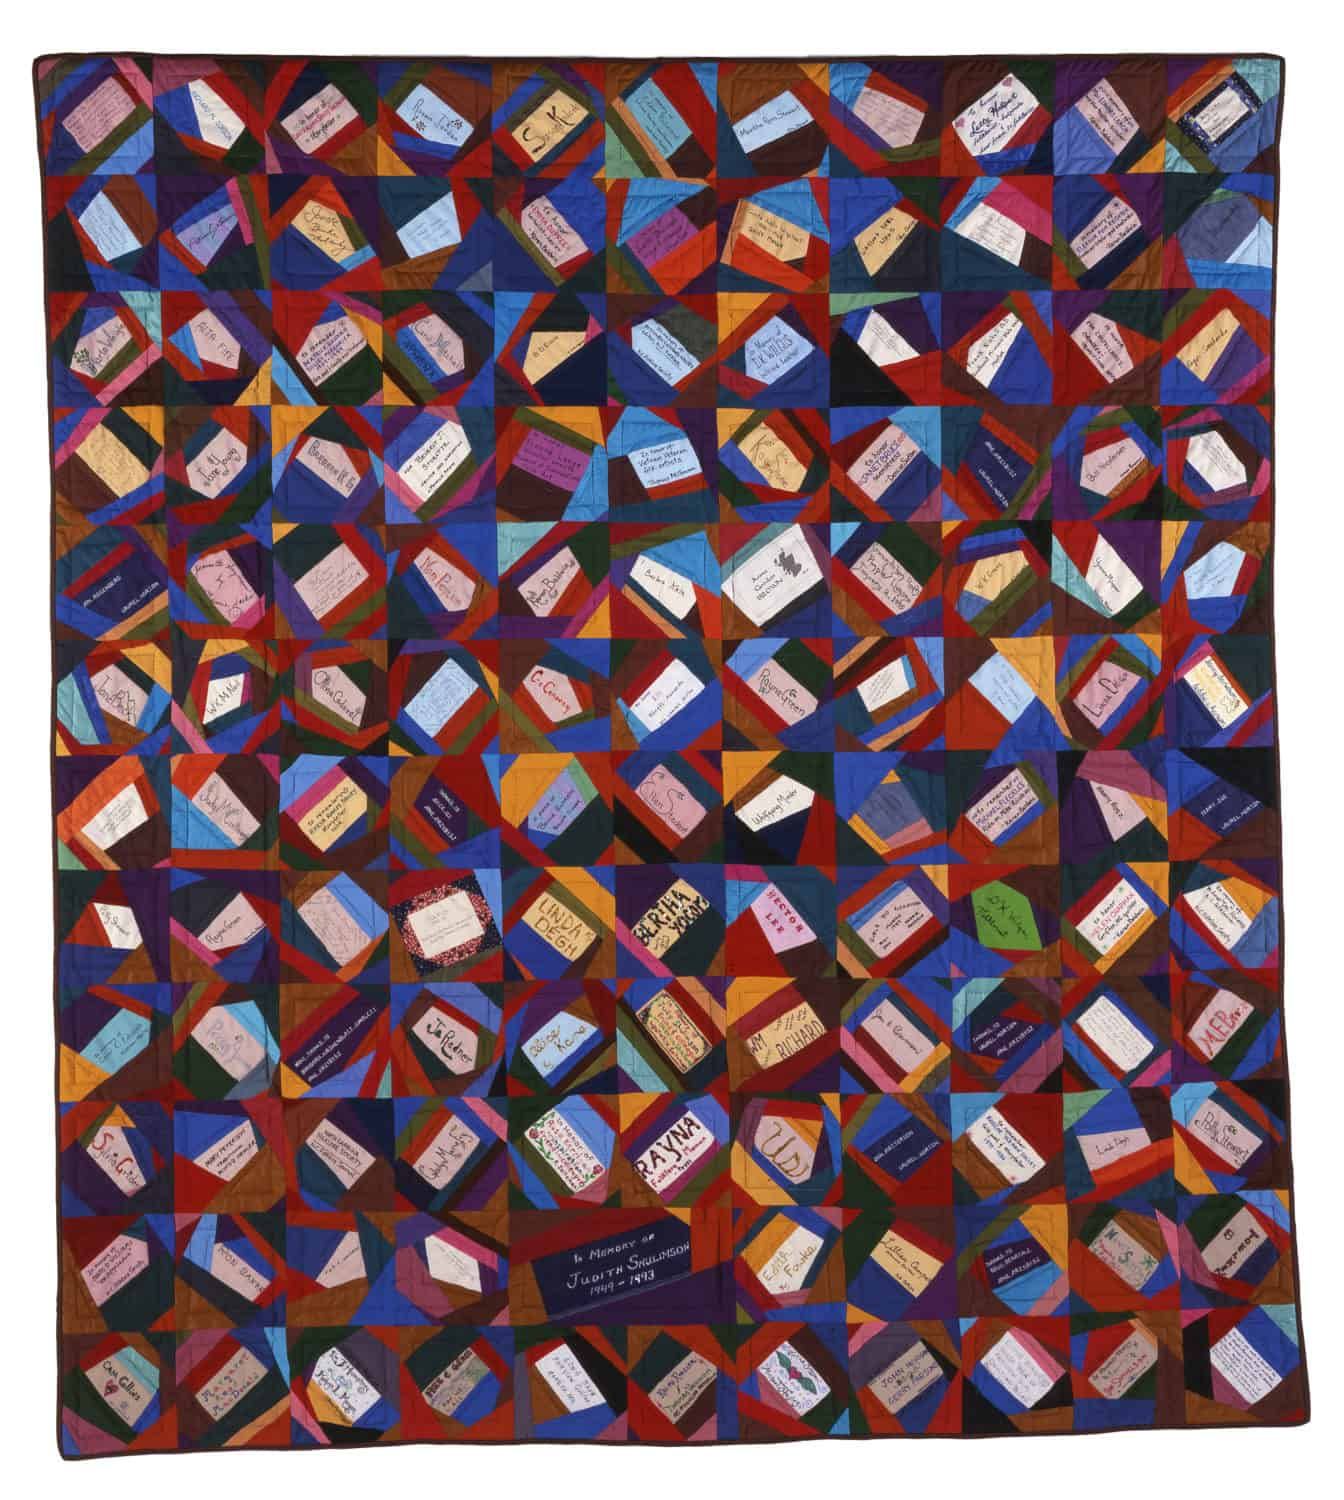 A square quilt made of irregularly shaped, colorful fabric pieces